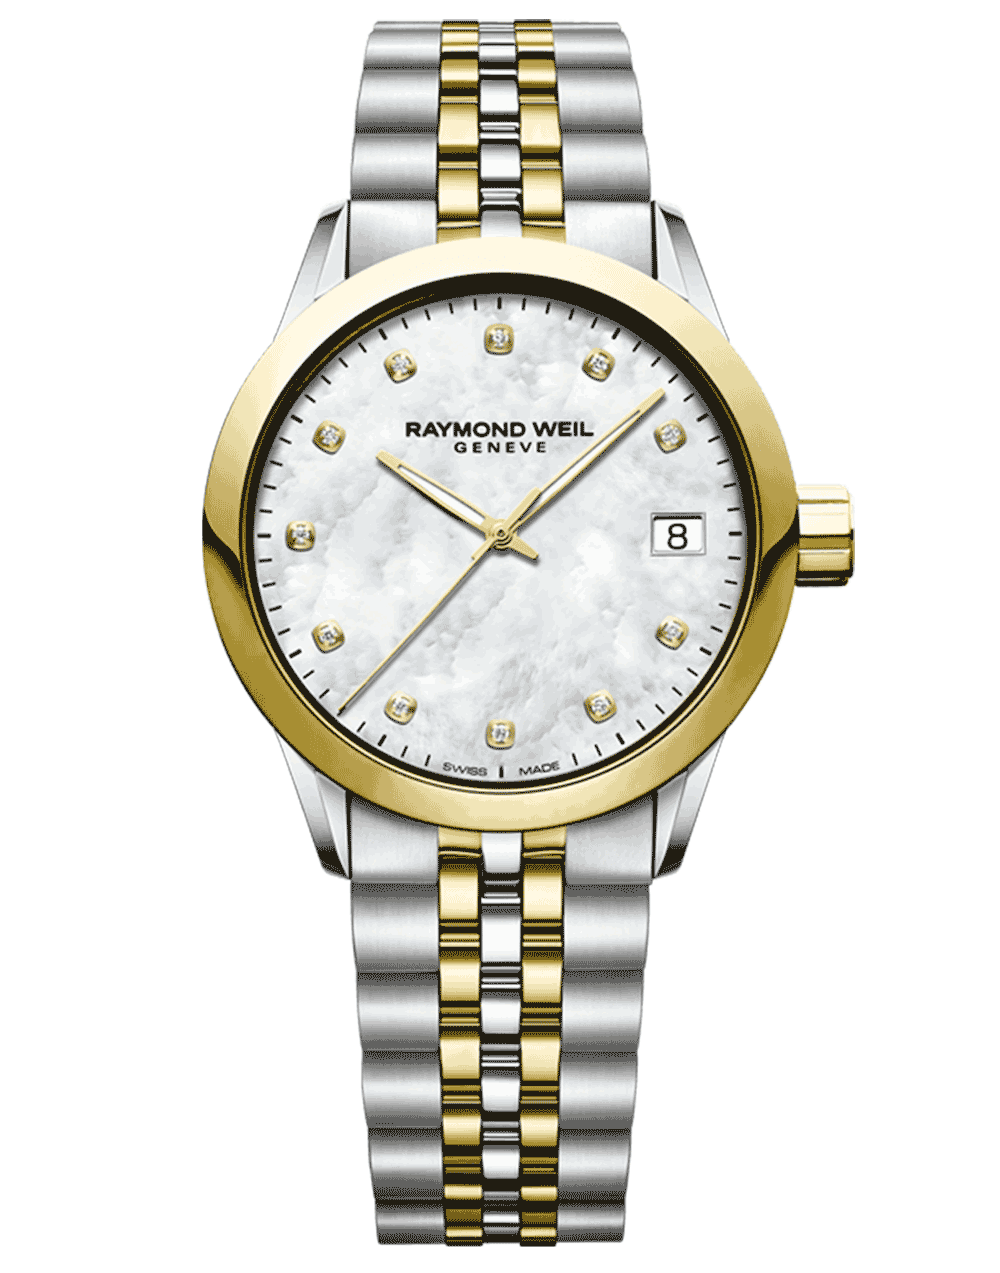 RAYMOND WEIL freelancer 5634-stp-97081 gold diamond watch